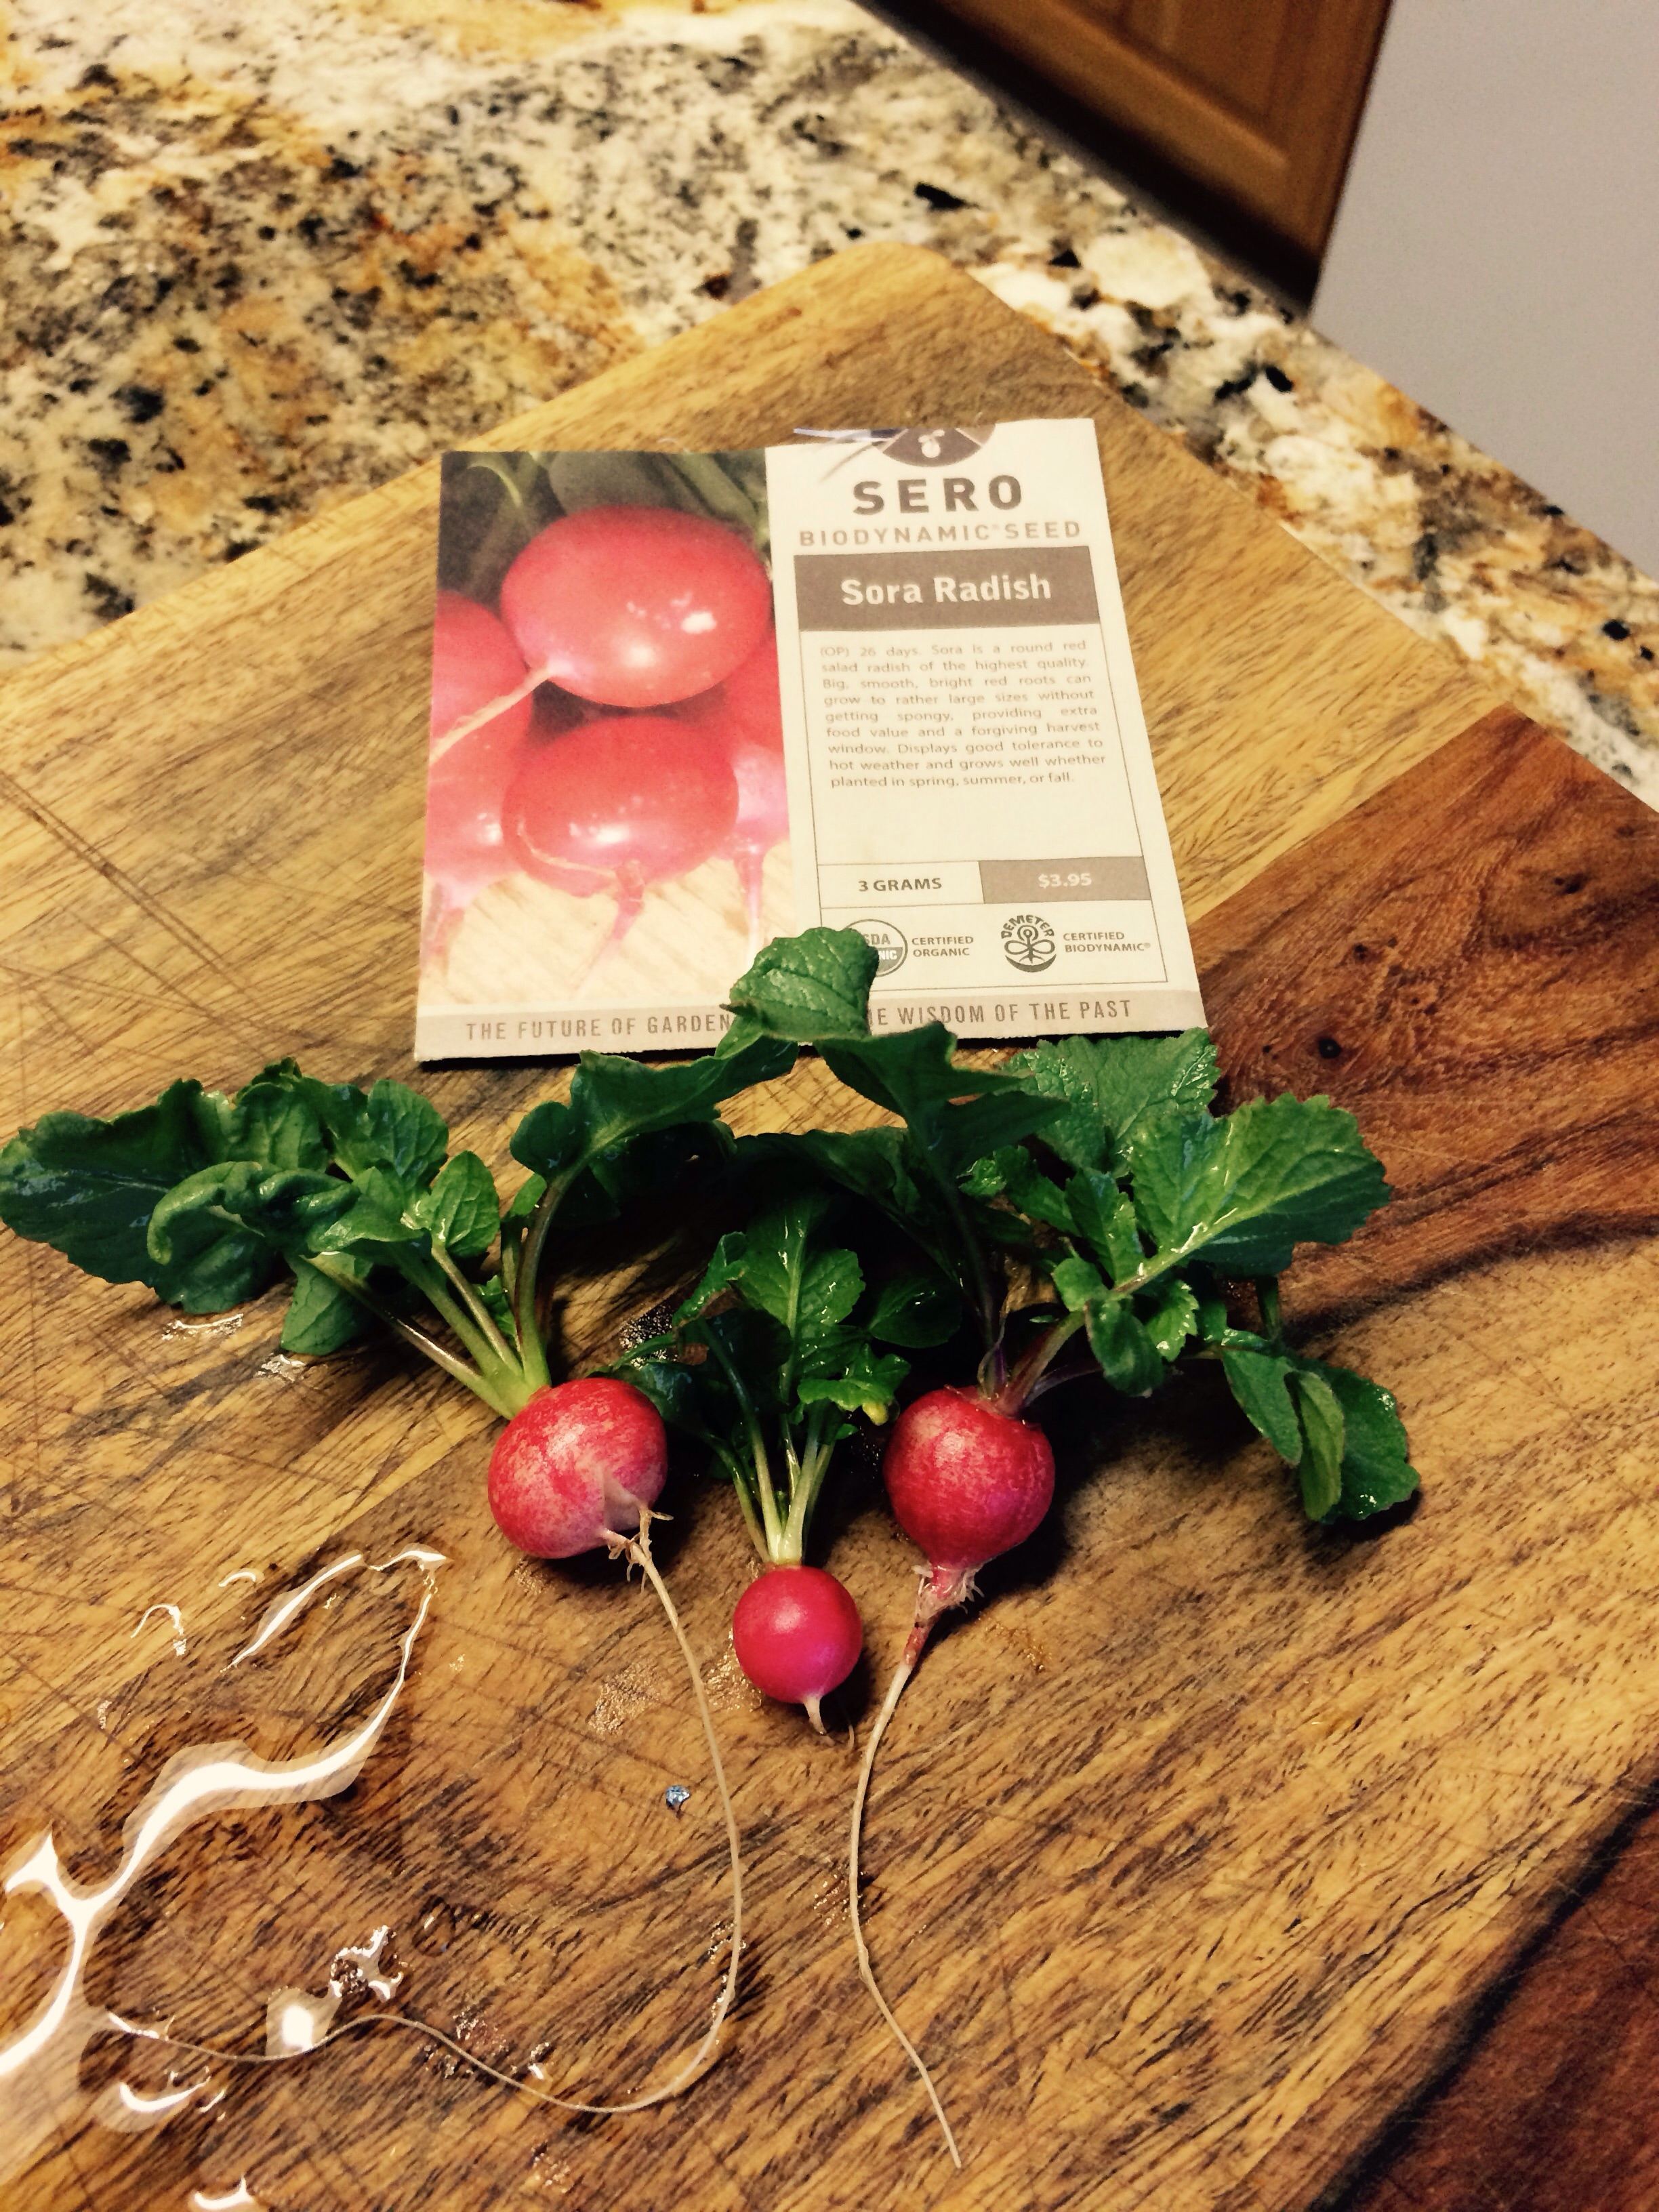 These radishes are so tasty tender